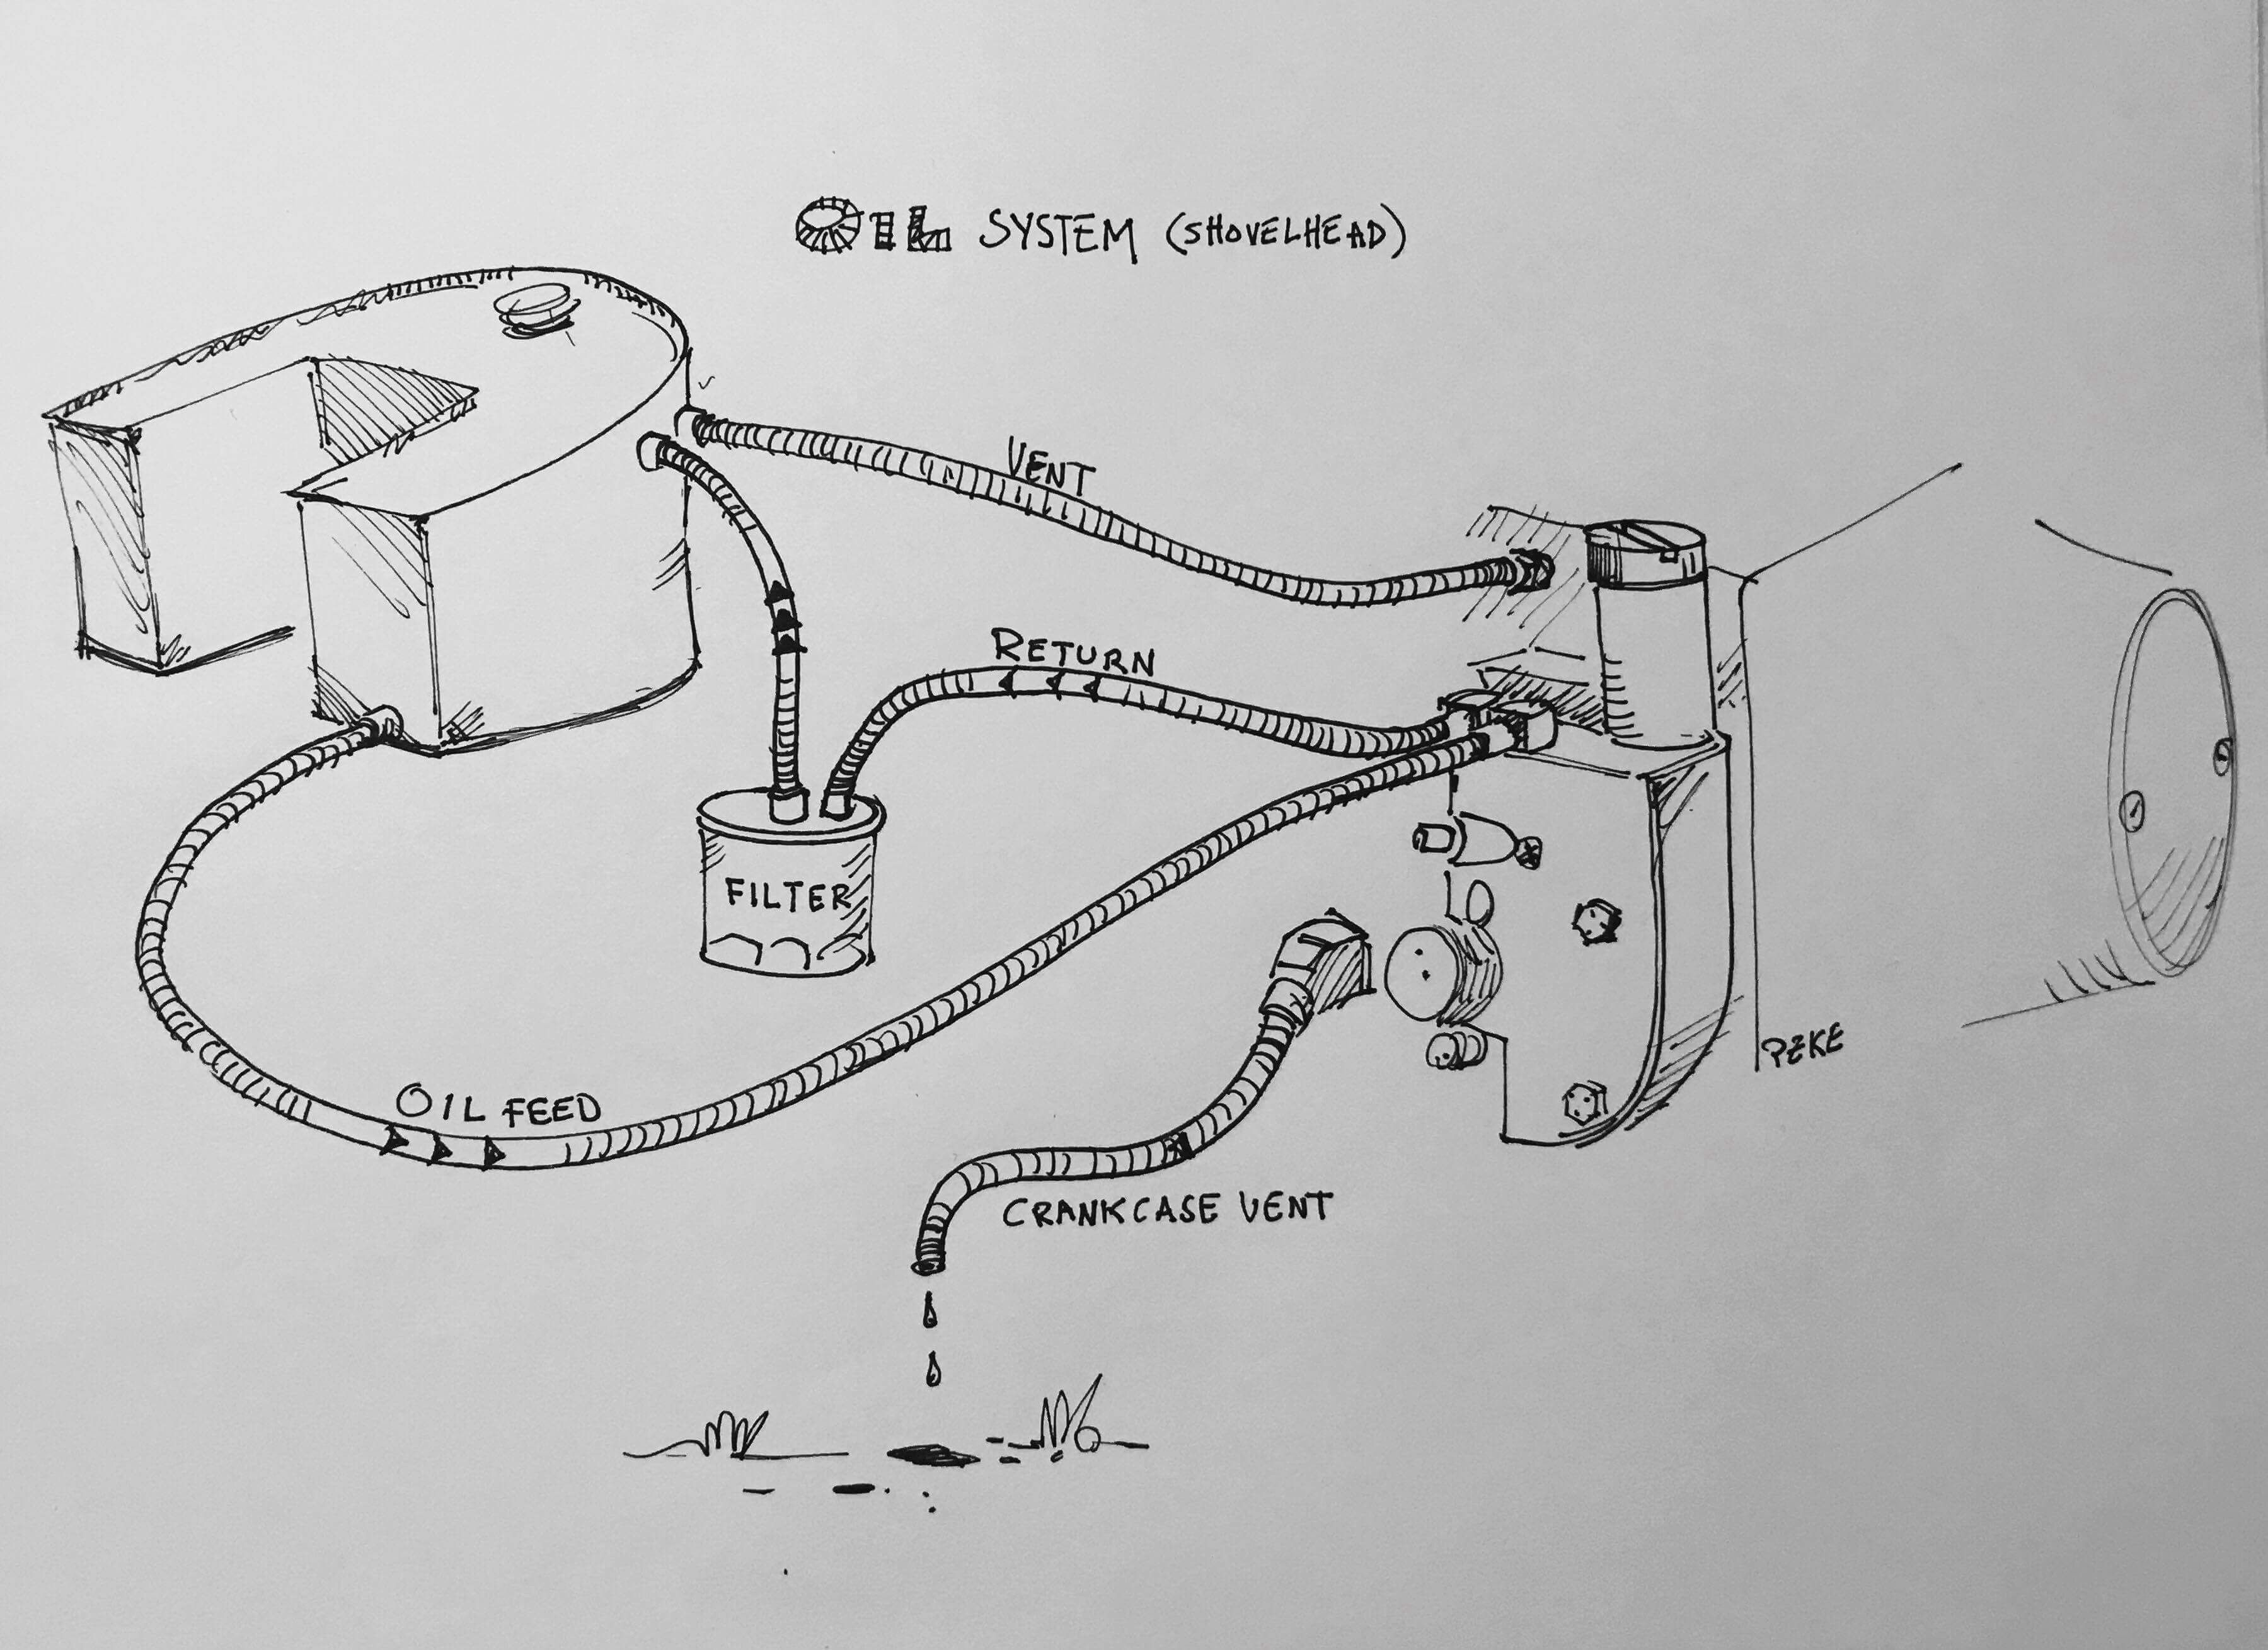 small resolution of system schematic further harley shovelhead oil system diagram on diagram for engine also sportster oil line